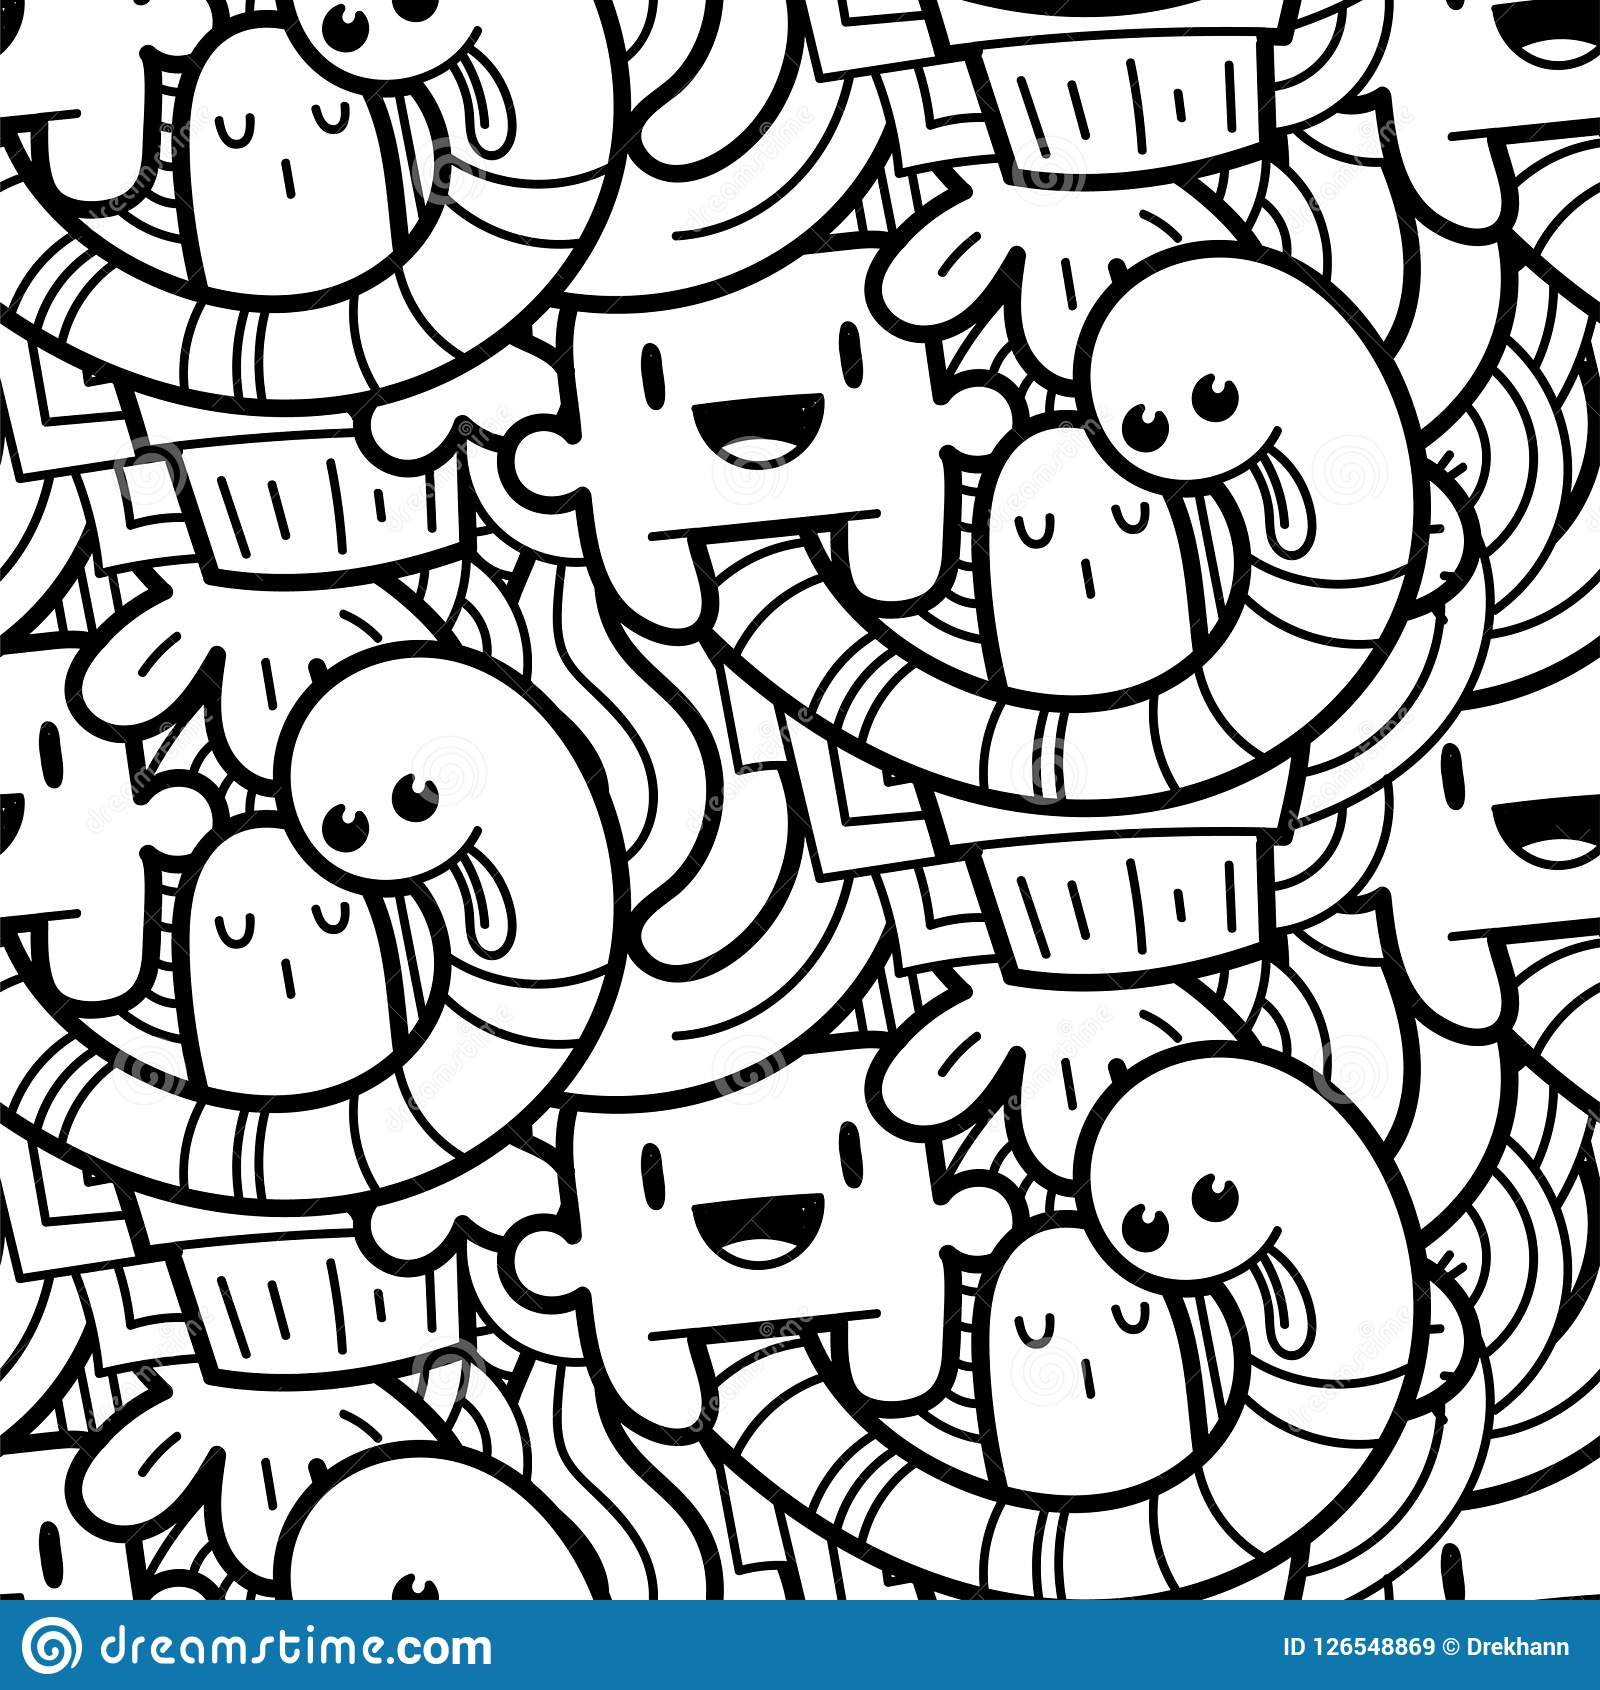 Funny Doodle Monsters Seamless Pattern For Prints, Designs And ...